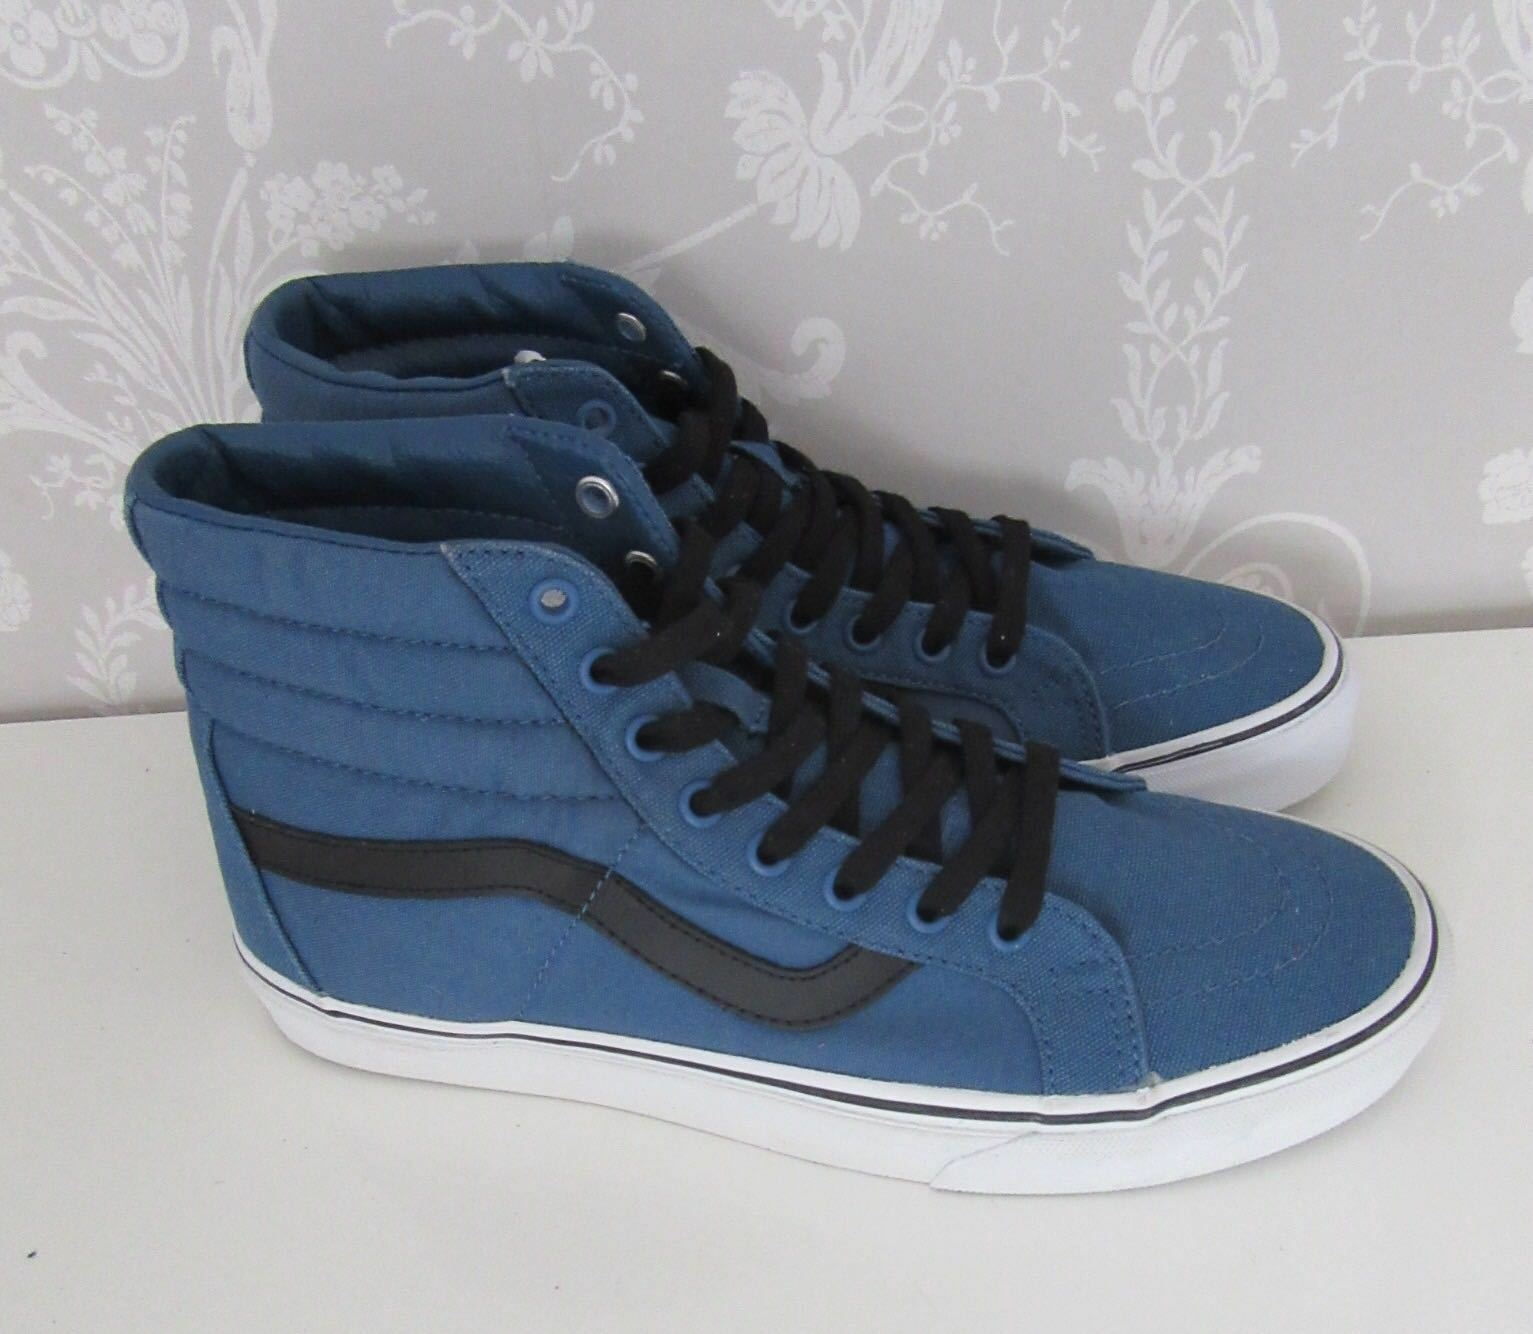 Totalmente Nuevo Exclusivo Vans-SK8-HI reedición u de 9.0  VN 0003 caiot-UK 8 US 9